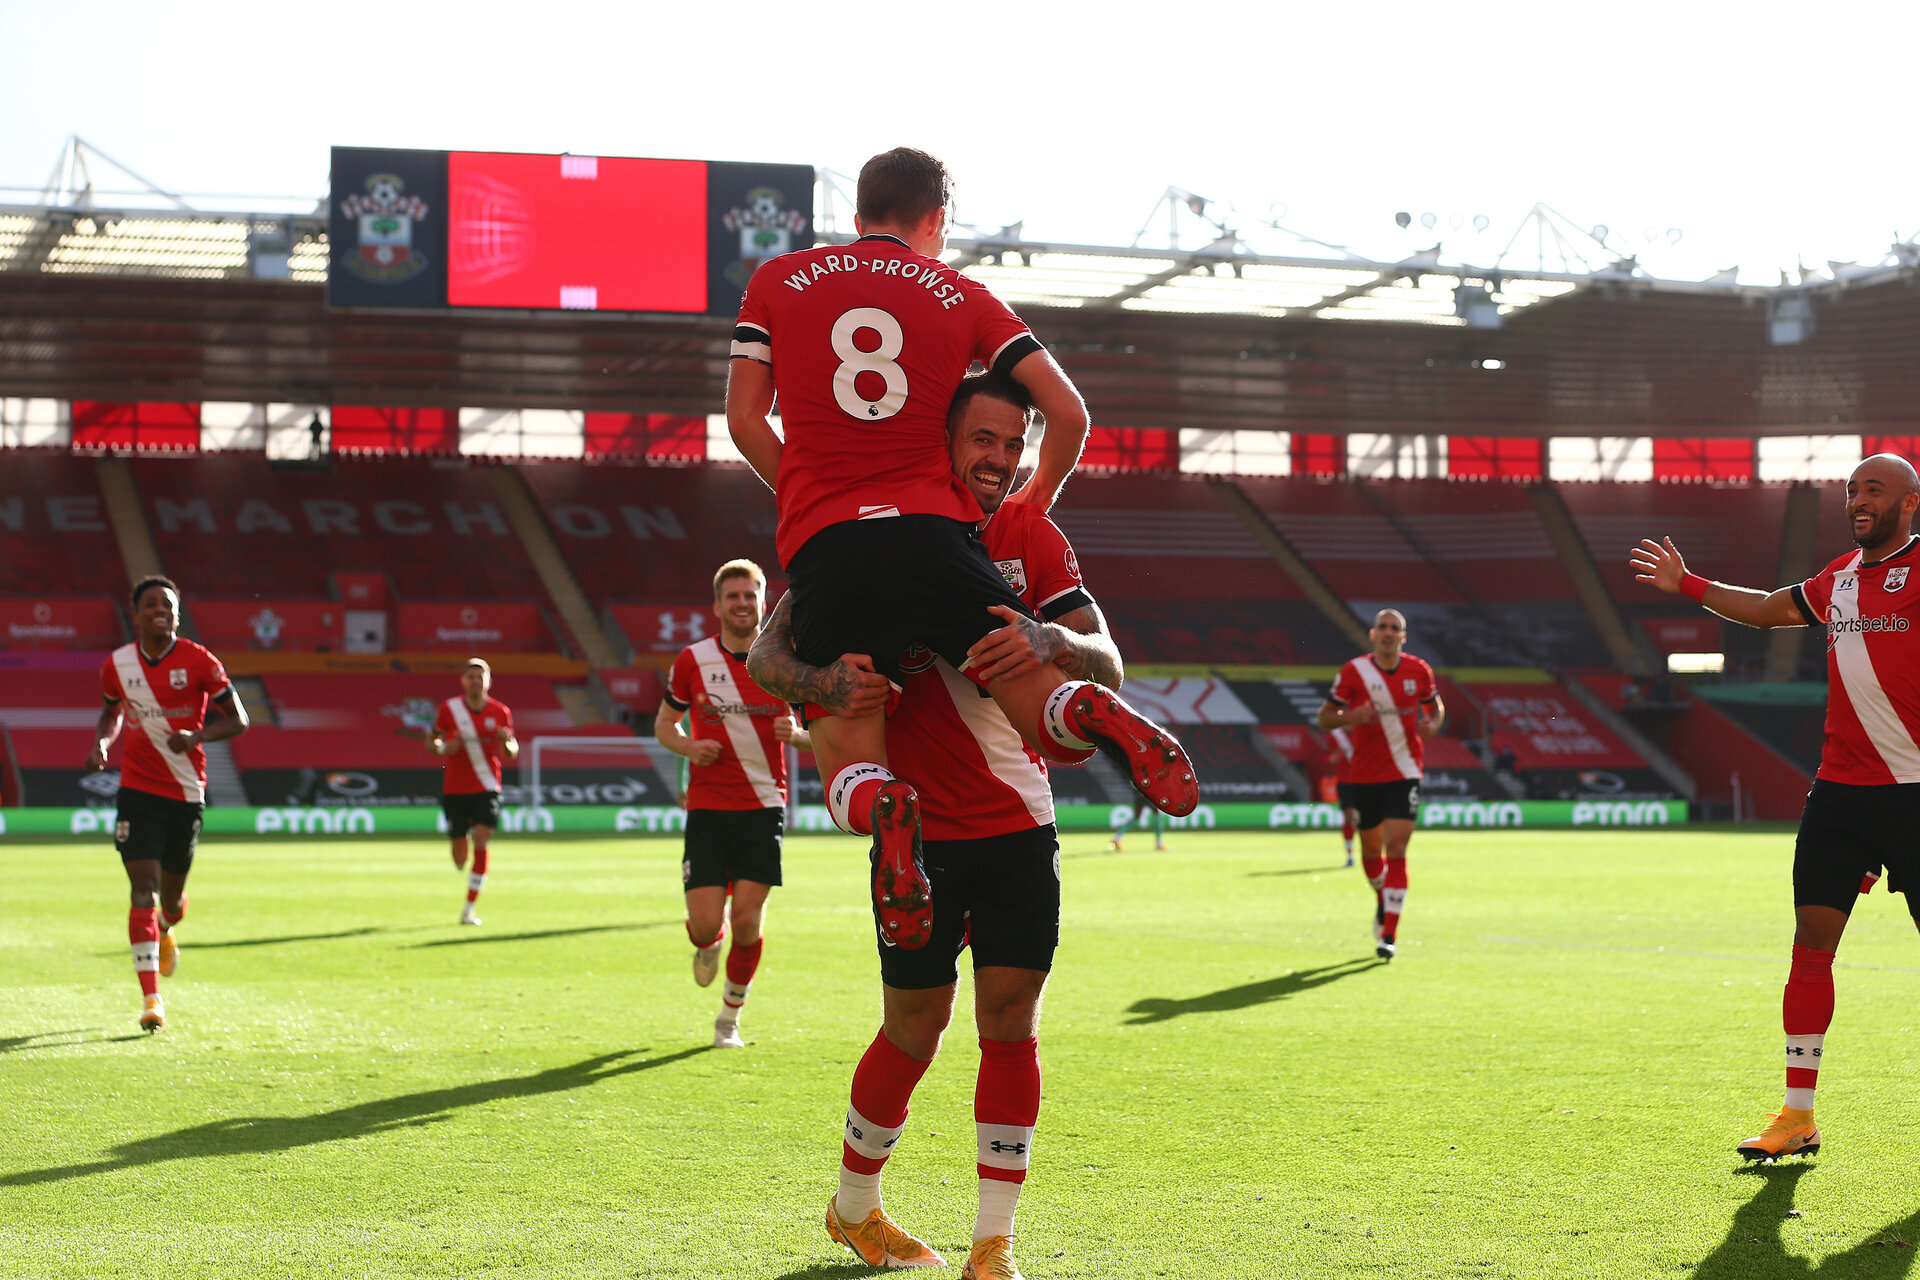 SOUTHAMPTON, ENGLAND - OCTOBER 25: James Ward-Prowse(8) of Southampton celebrates with Danny Ings during the Premier League match between Southampton and Everton at St Mary's Stadium on October 25, 2020 in Southampton, England. Sporting stadiums around the UK remain under strict restrictions due to the Coronavirus Pandemic as Government social distancing laws prohibit fans inside venues resulting in games being played behind closed doors. (Photo by Matt Watson/Southampton FC via Getty Images)